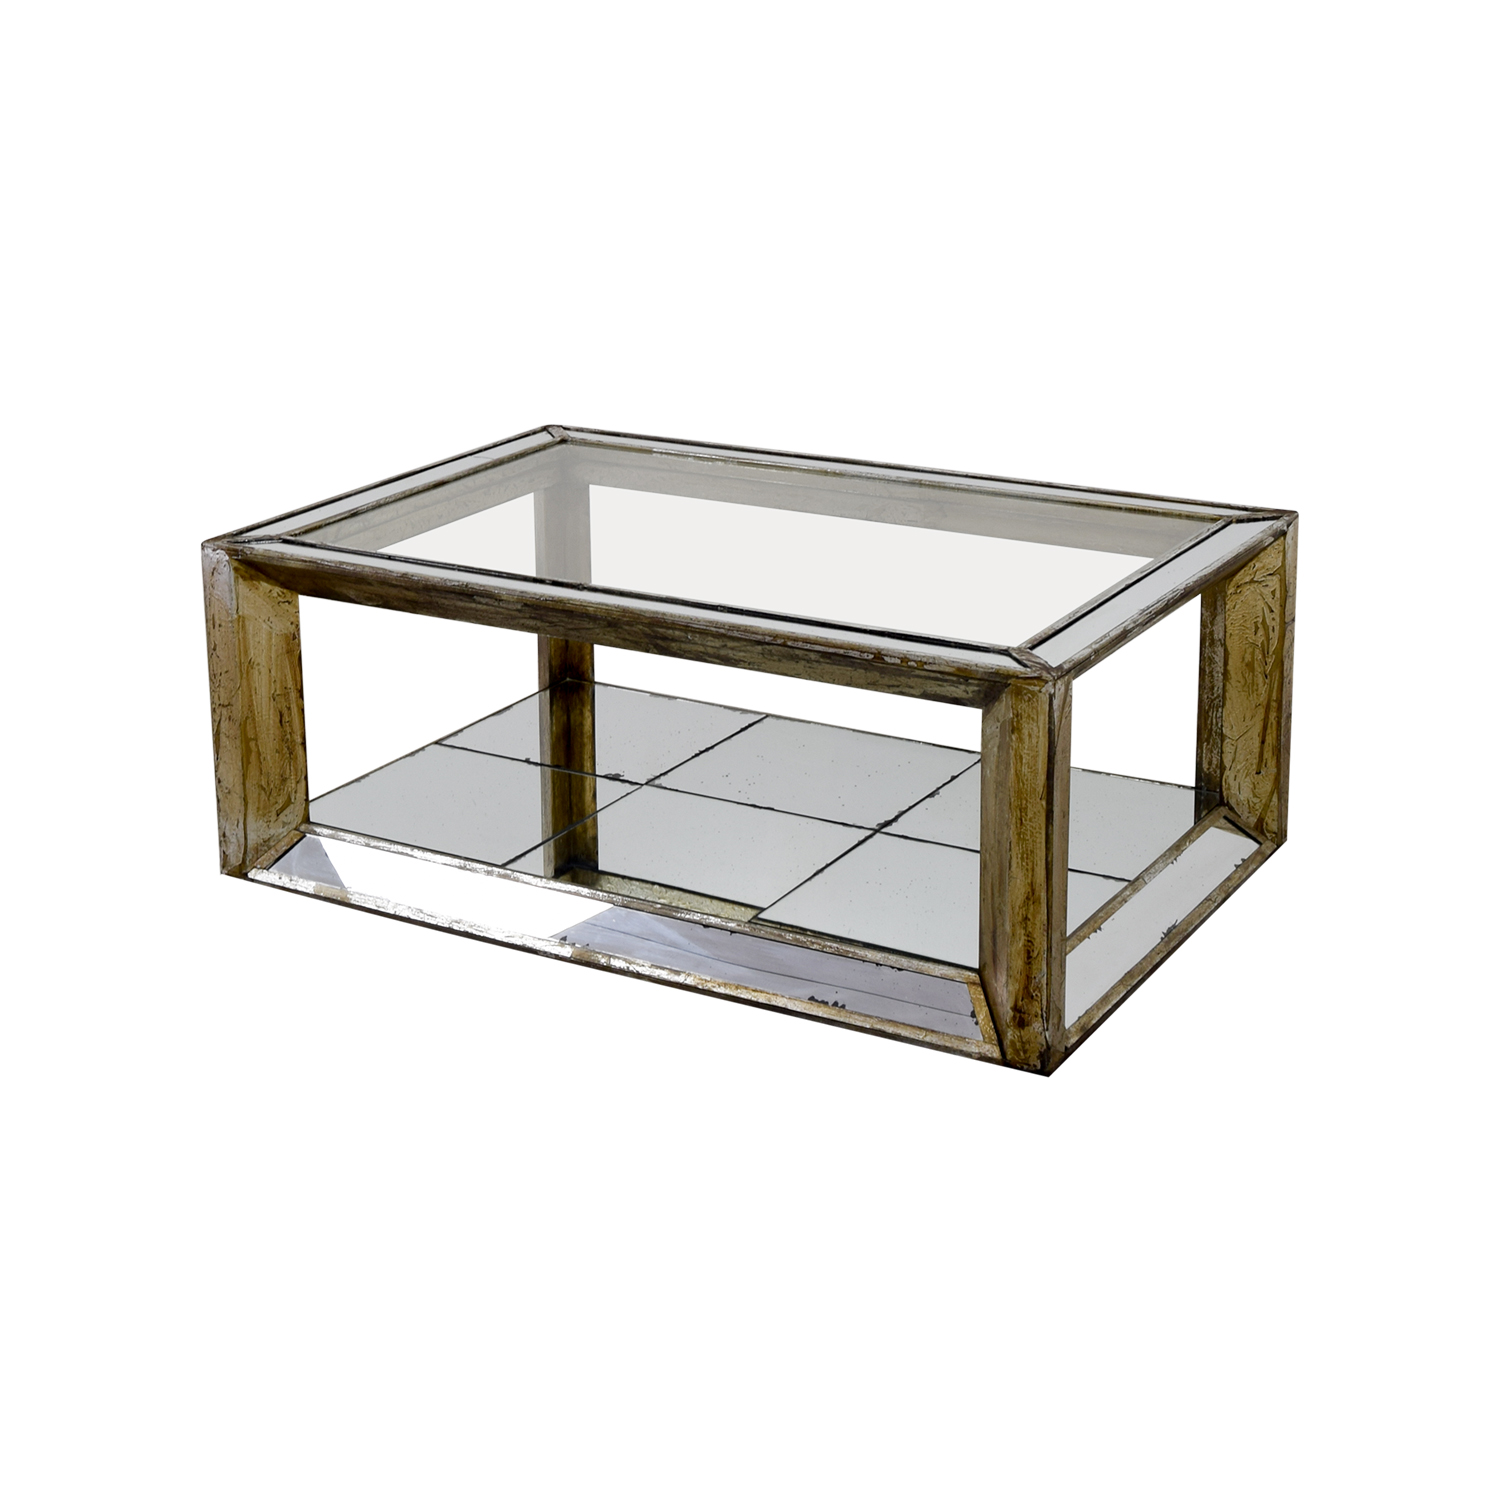 86 off houston furniture mirror and glass coffee table tables